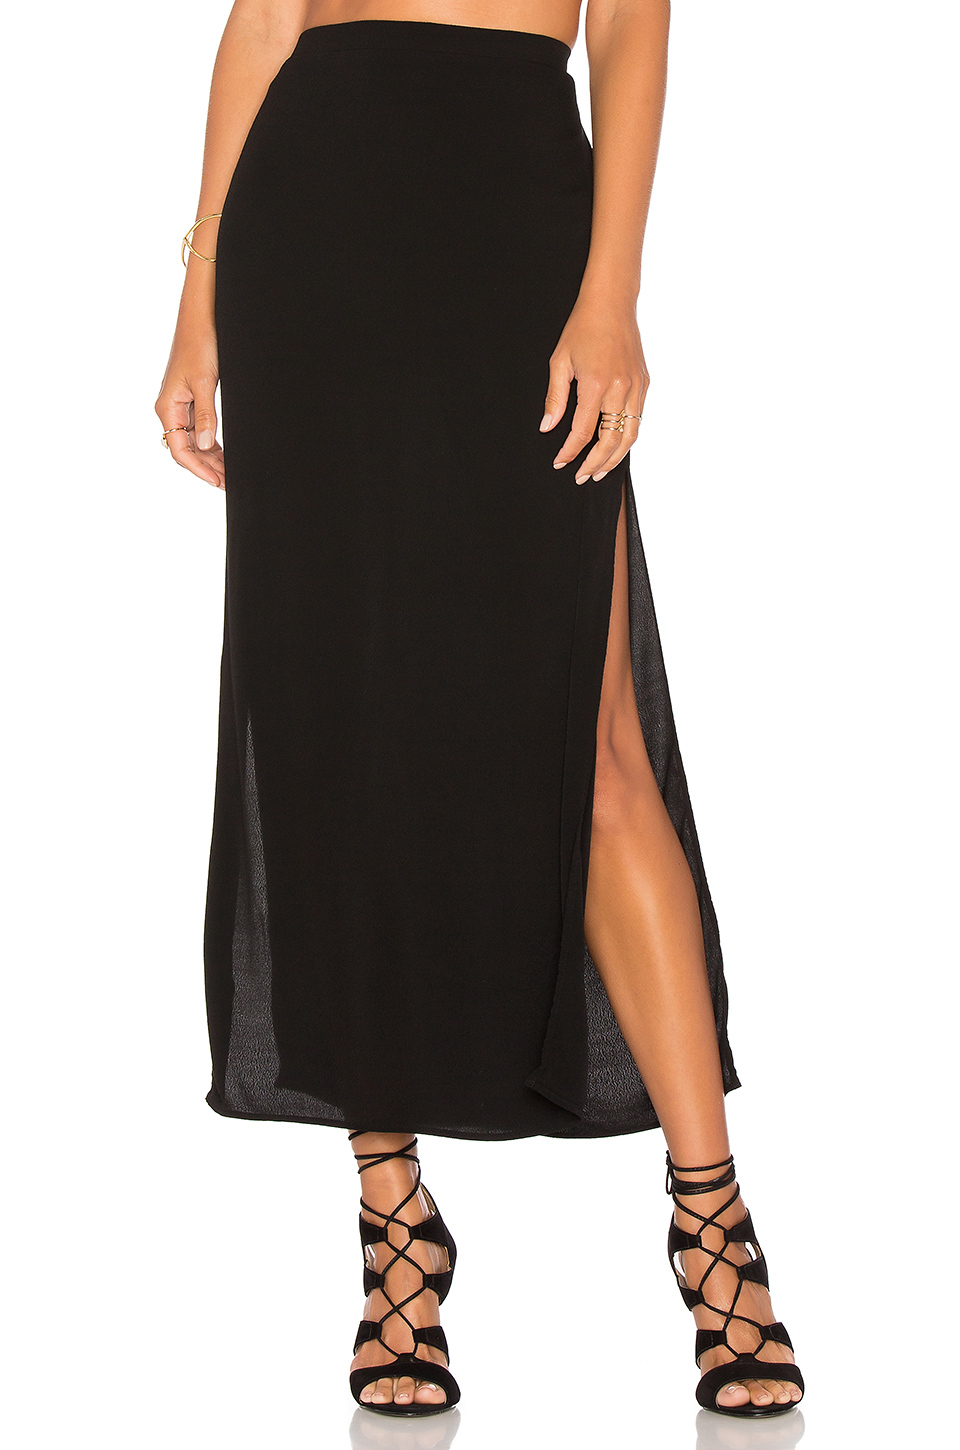 You will love the way you look in this sexy, beautifully-designed two piece skirt and crop top. It is made from a gauzy, semi-sheer, high quality cotton fabric that is wonderfully comfortable.